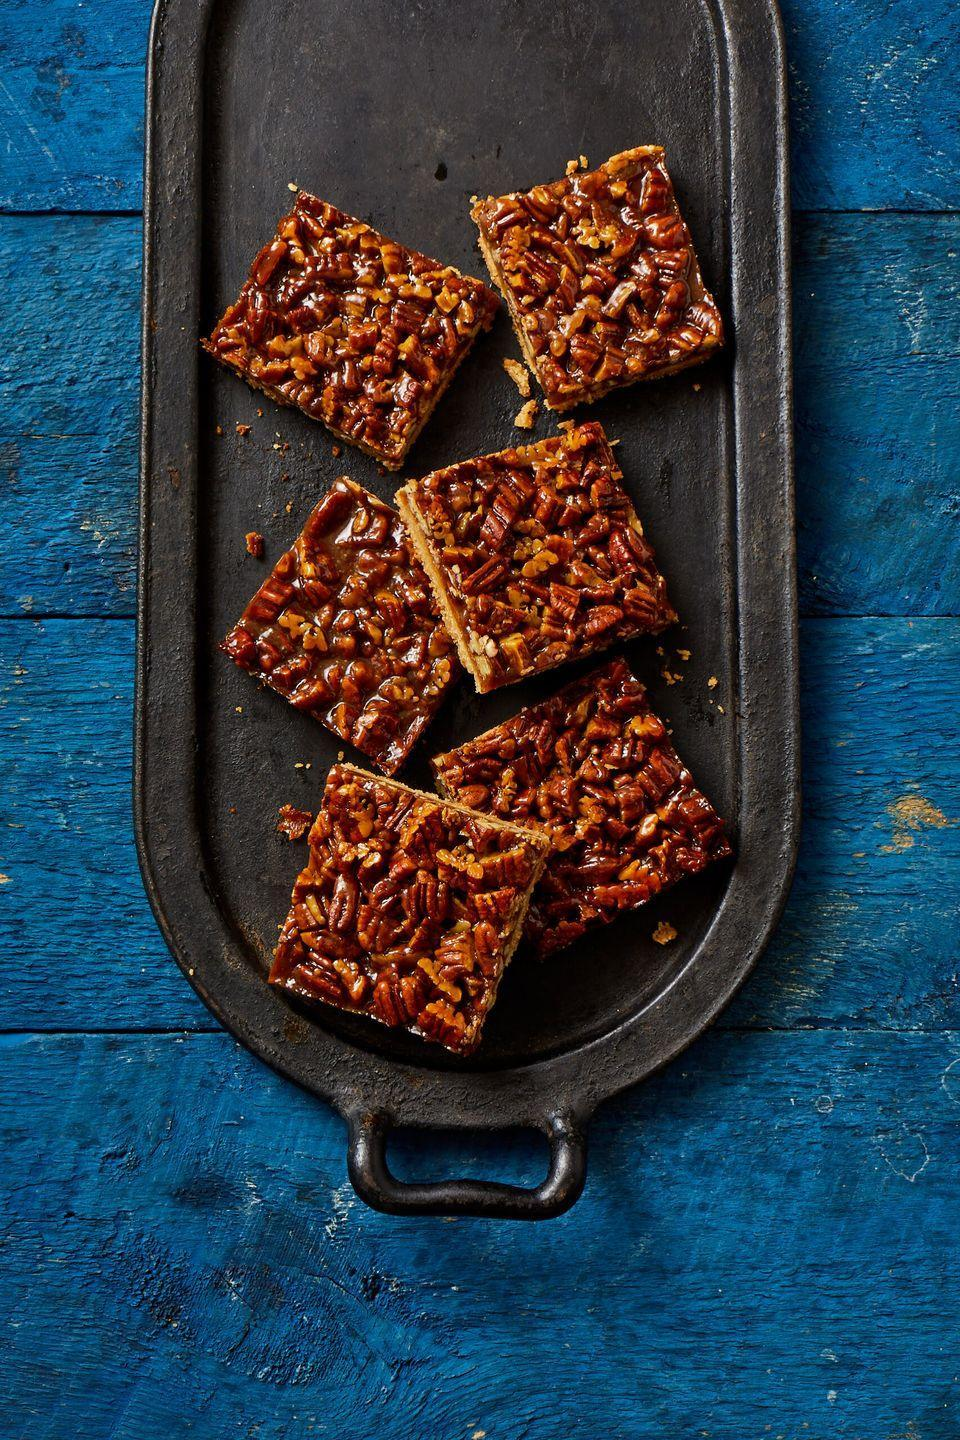 """<p>Bourbon, brown sugar and rich caramel make the perfect on-the-go treat this fall.</p><p><em><a href=""""https://www.goodhousekeeping.com/food-recipes/dessert/a33809115/pecan-pie-bar-recipe/"""" rel=""""nofollow noopener"""" target=""""_blank"""" data-ylk=""""slk:Get the recipe for Pecan Pie Bars »"""" class=""""link rapid-noclick-resp"""">Get the recipe for Pecan Pie Bars »</a></em></p><p><strong>RELATED: </strong><a href=""""https://www.goodhousekeeping.com/food-recipes/dessert/g28089407/easy-fall-desserts/"""" rel=""""nofollow noopener"""" target=""""_blank"""" data-ylk=""""slk:60 Easy Fall Desserts That'll Wow Your Dinner Guests"""" class=""""link rapid-noclick-resp"""">60 Easy Fall Desserts That'll Wow Your Dinner Guests</a></p>"""